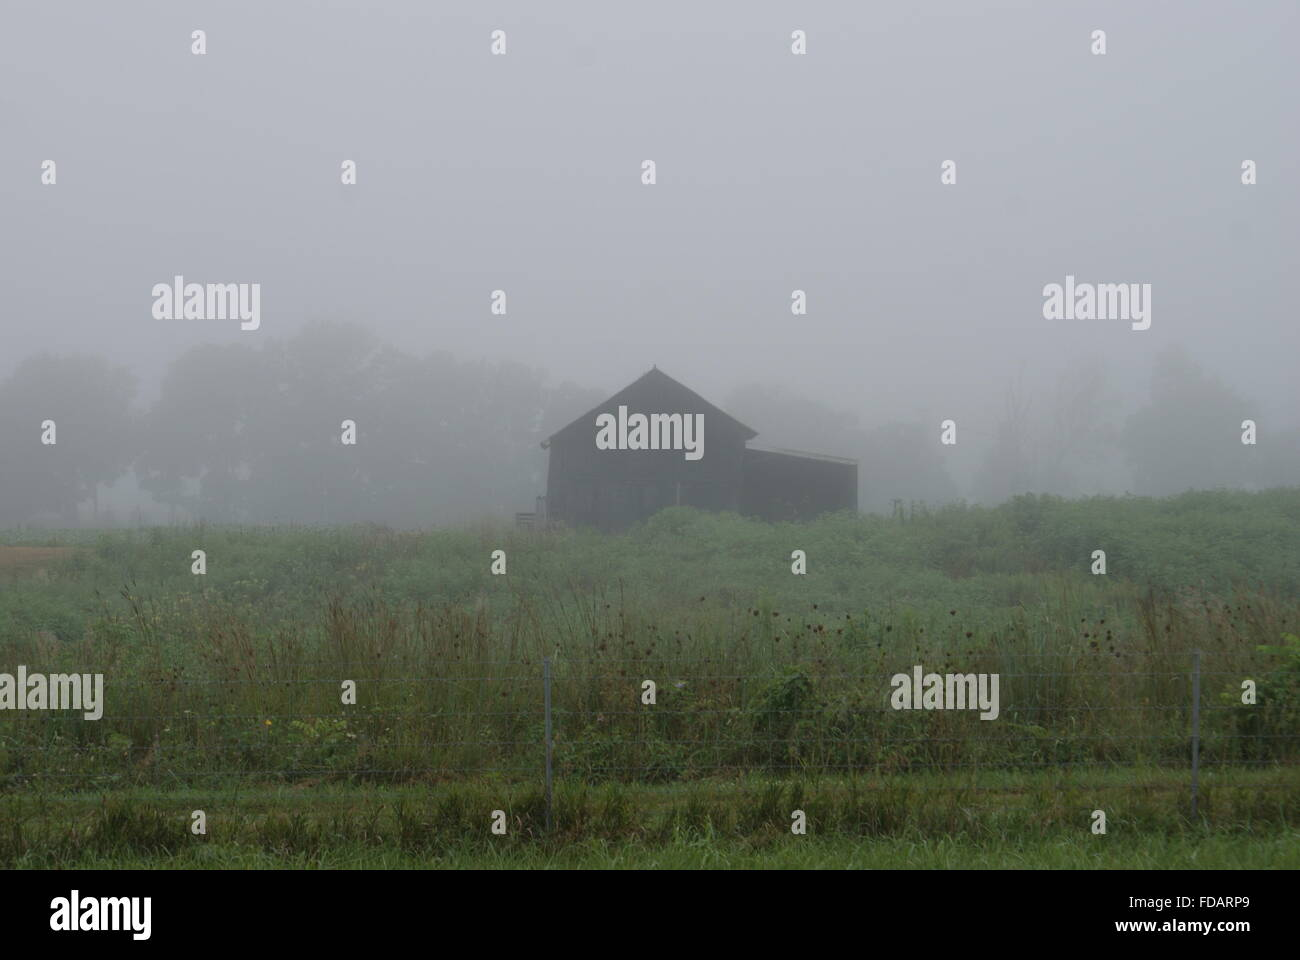 An early foggy morning and an old  Kentucky barn in the back ground. - Stock Image